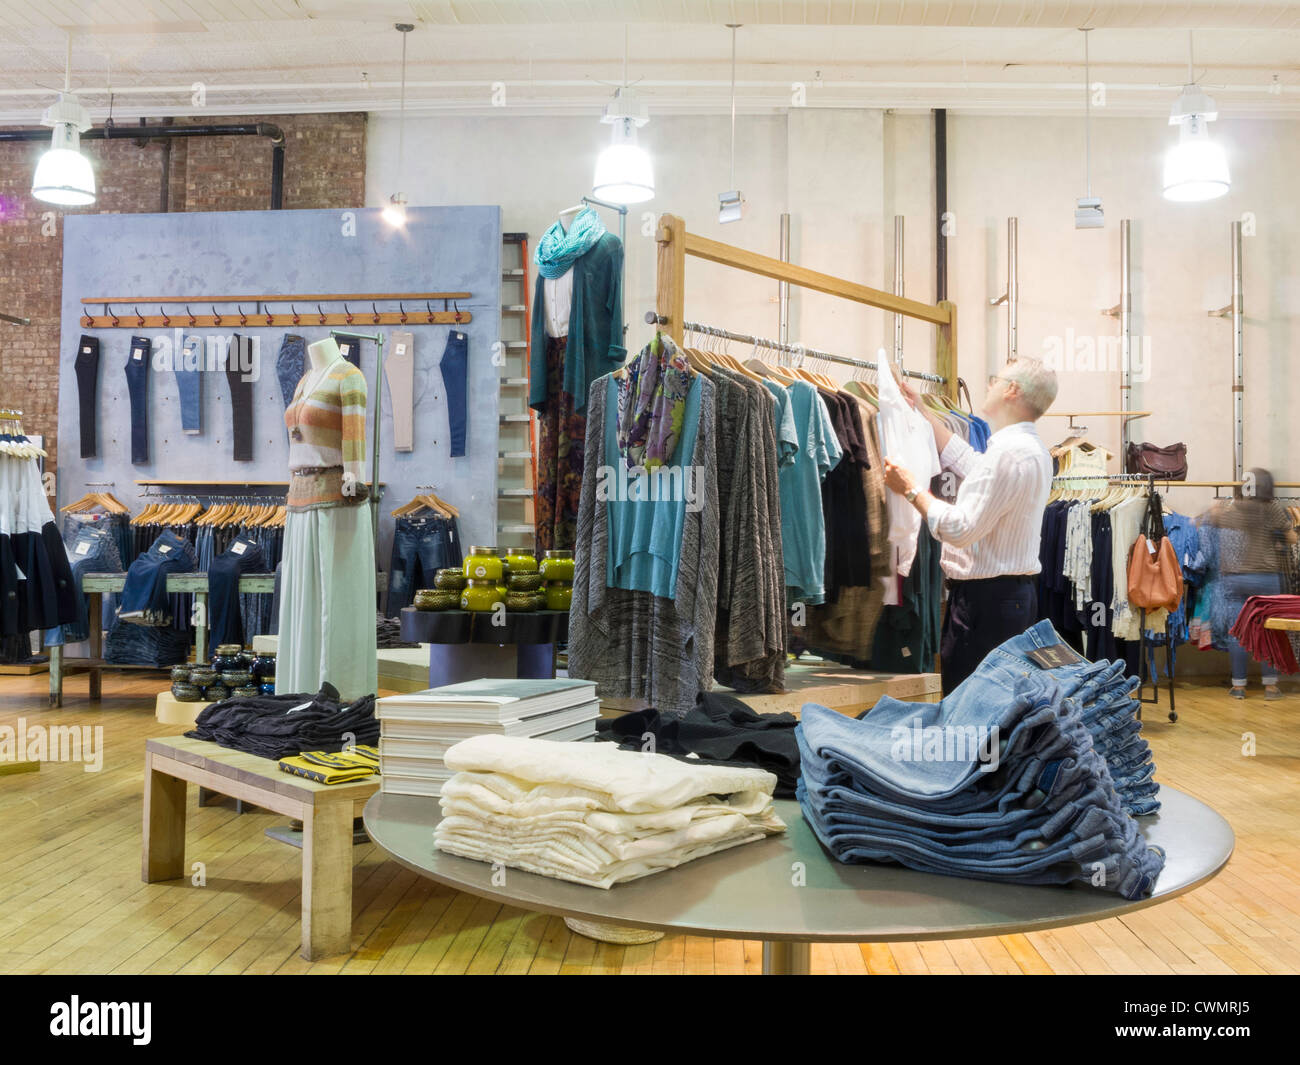 anthropologie store interior soho nyc stock photo 50244717 alamy. Black Bedroom Furniture Sets. Home Design Ideas